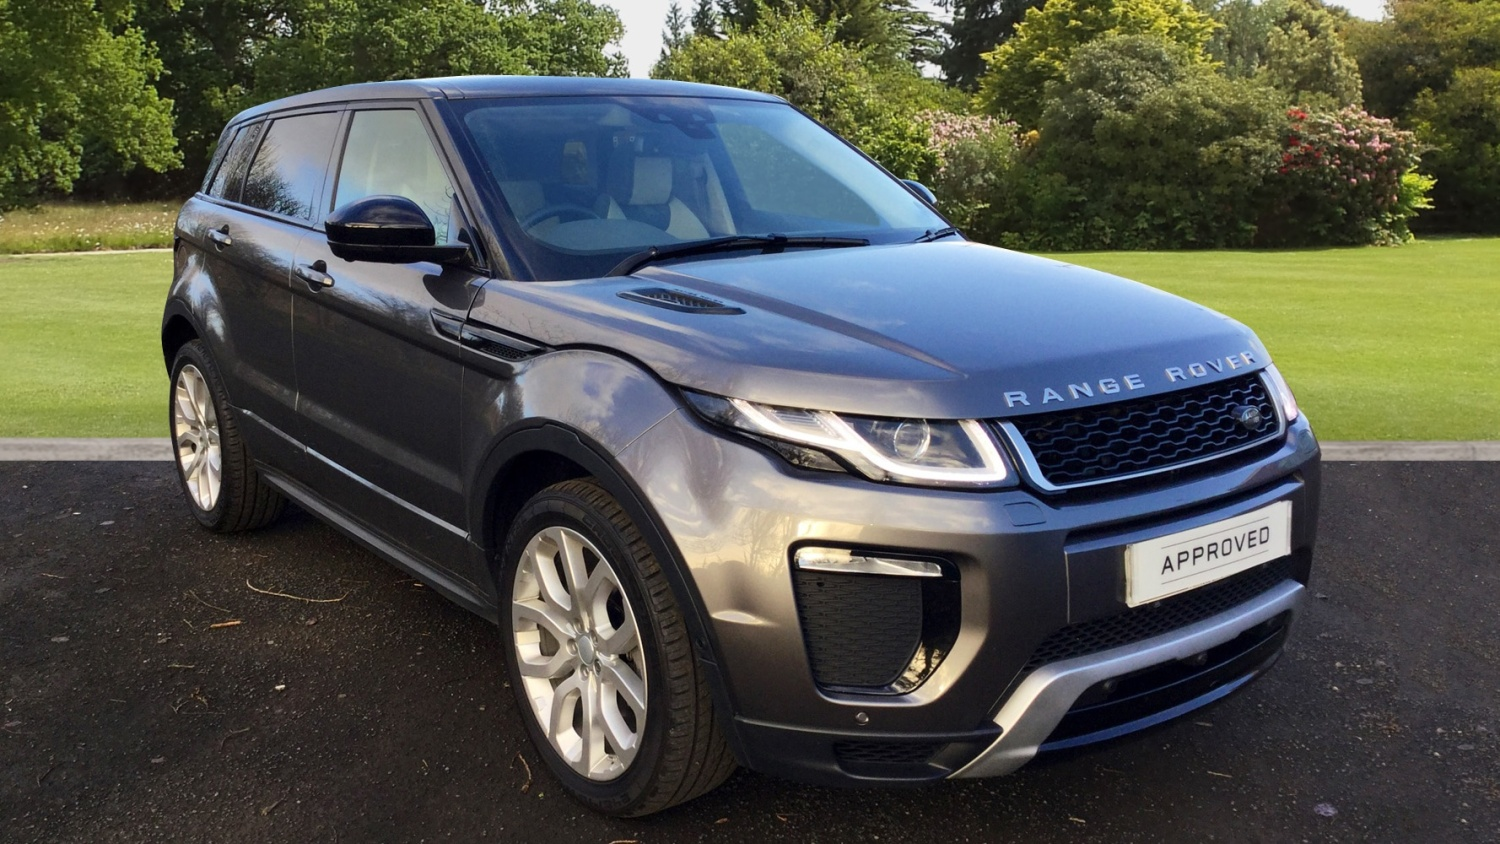 used land rover range rover evoque 2 0 td4 hse dynamic lux. Black Bedroom Furniture Sets. Home Design Ideas